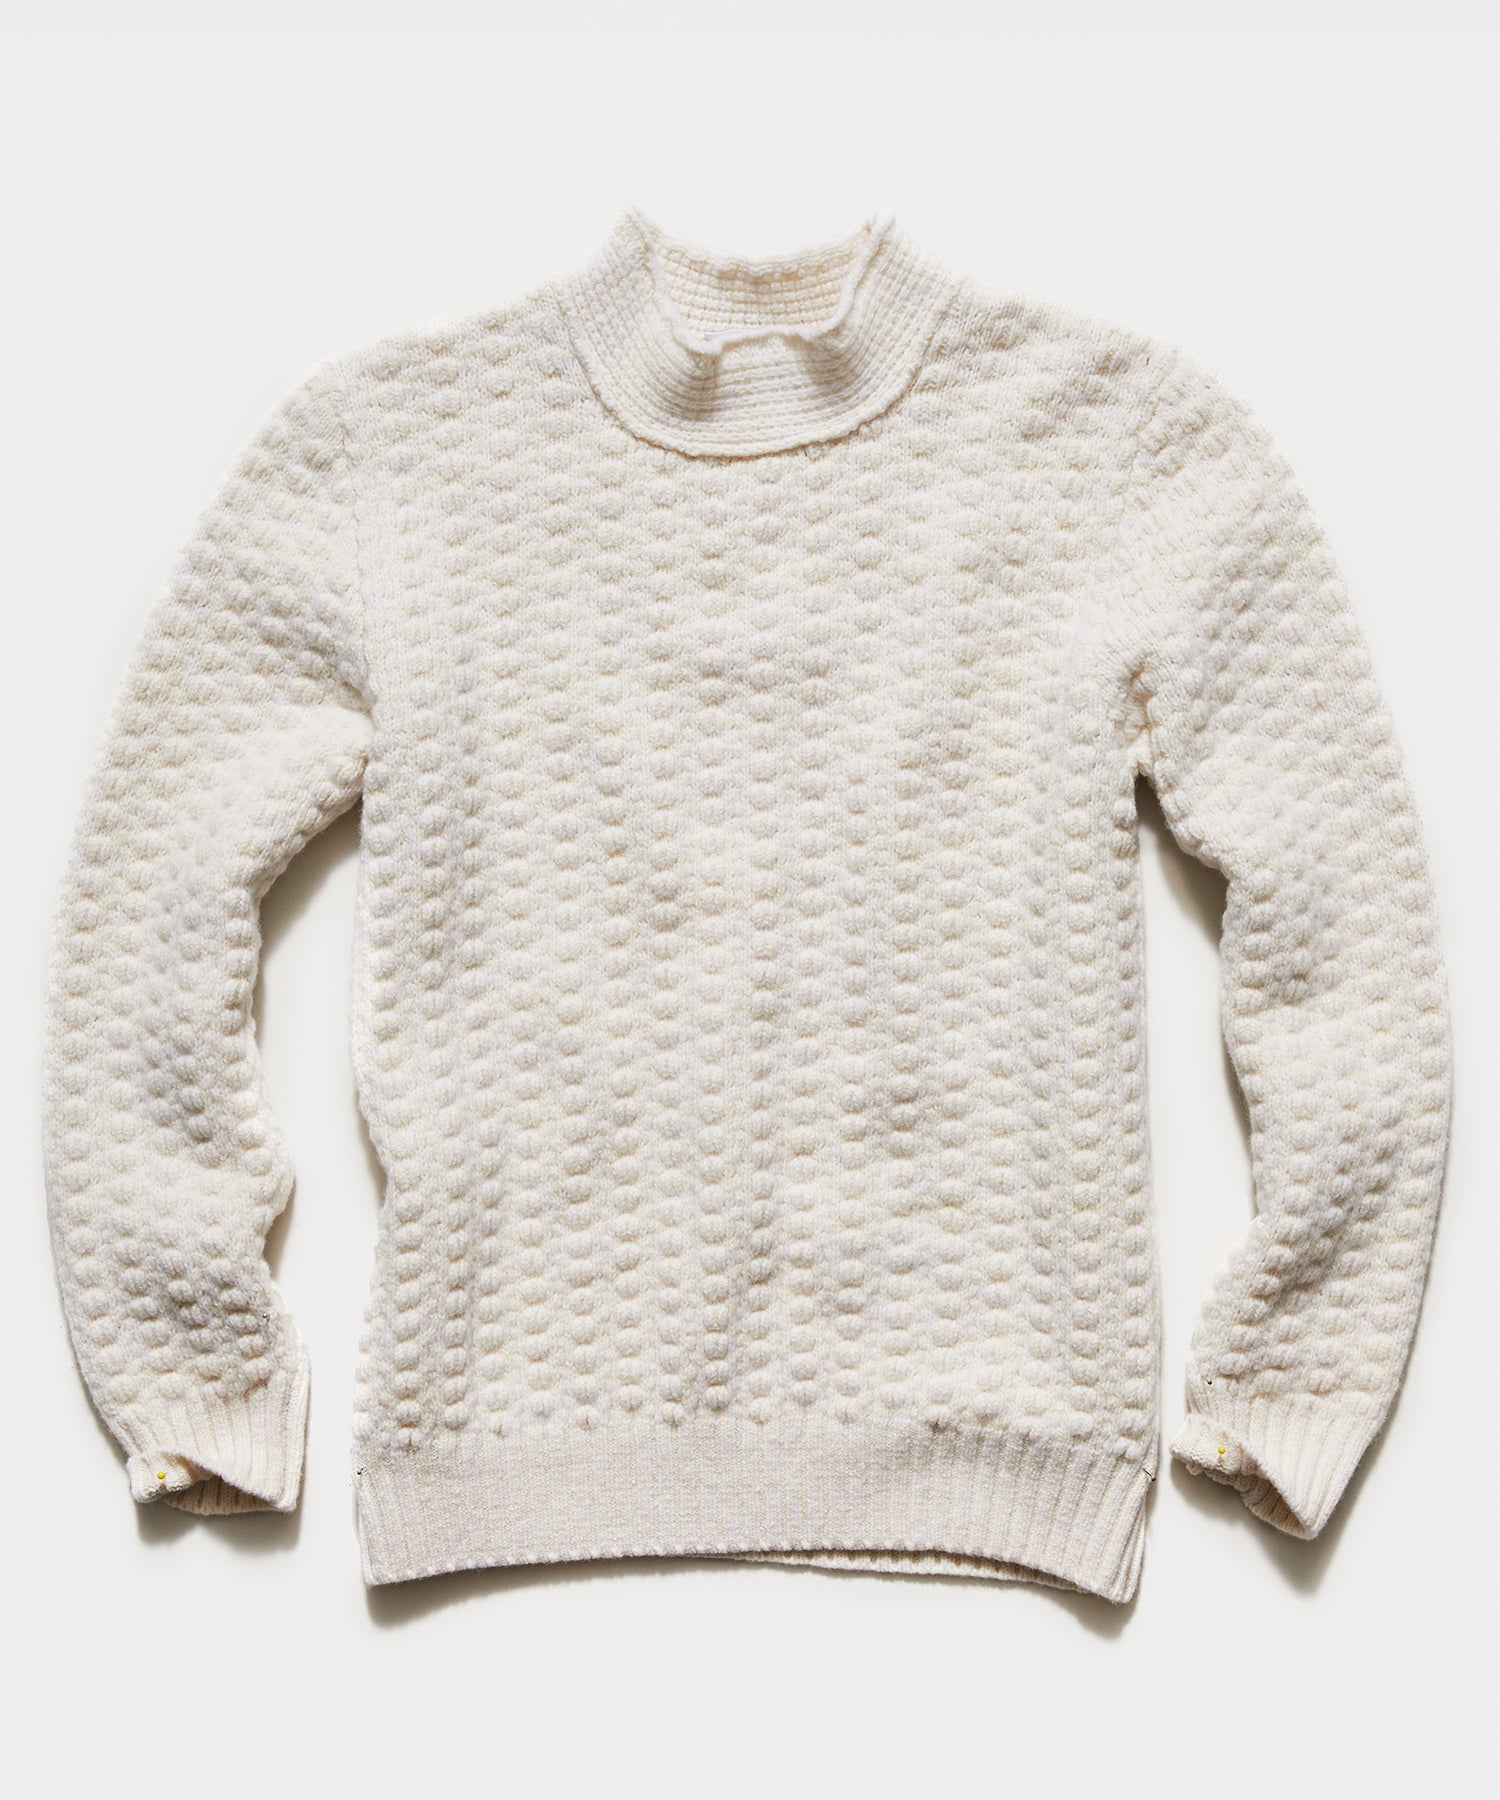 Inis Meain Beairtini Moss Stitch High Ribbed Mock in Ivory